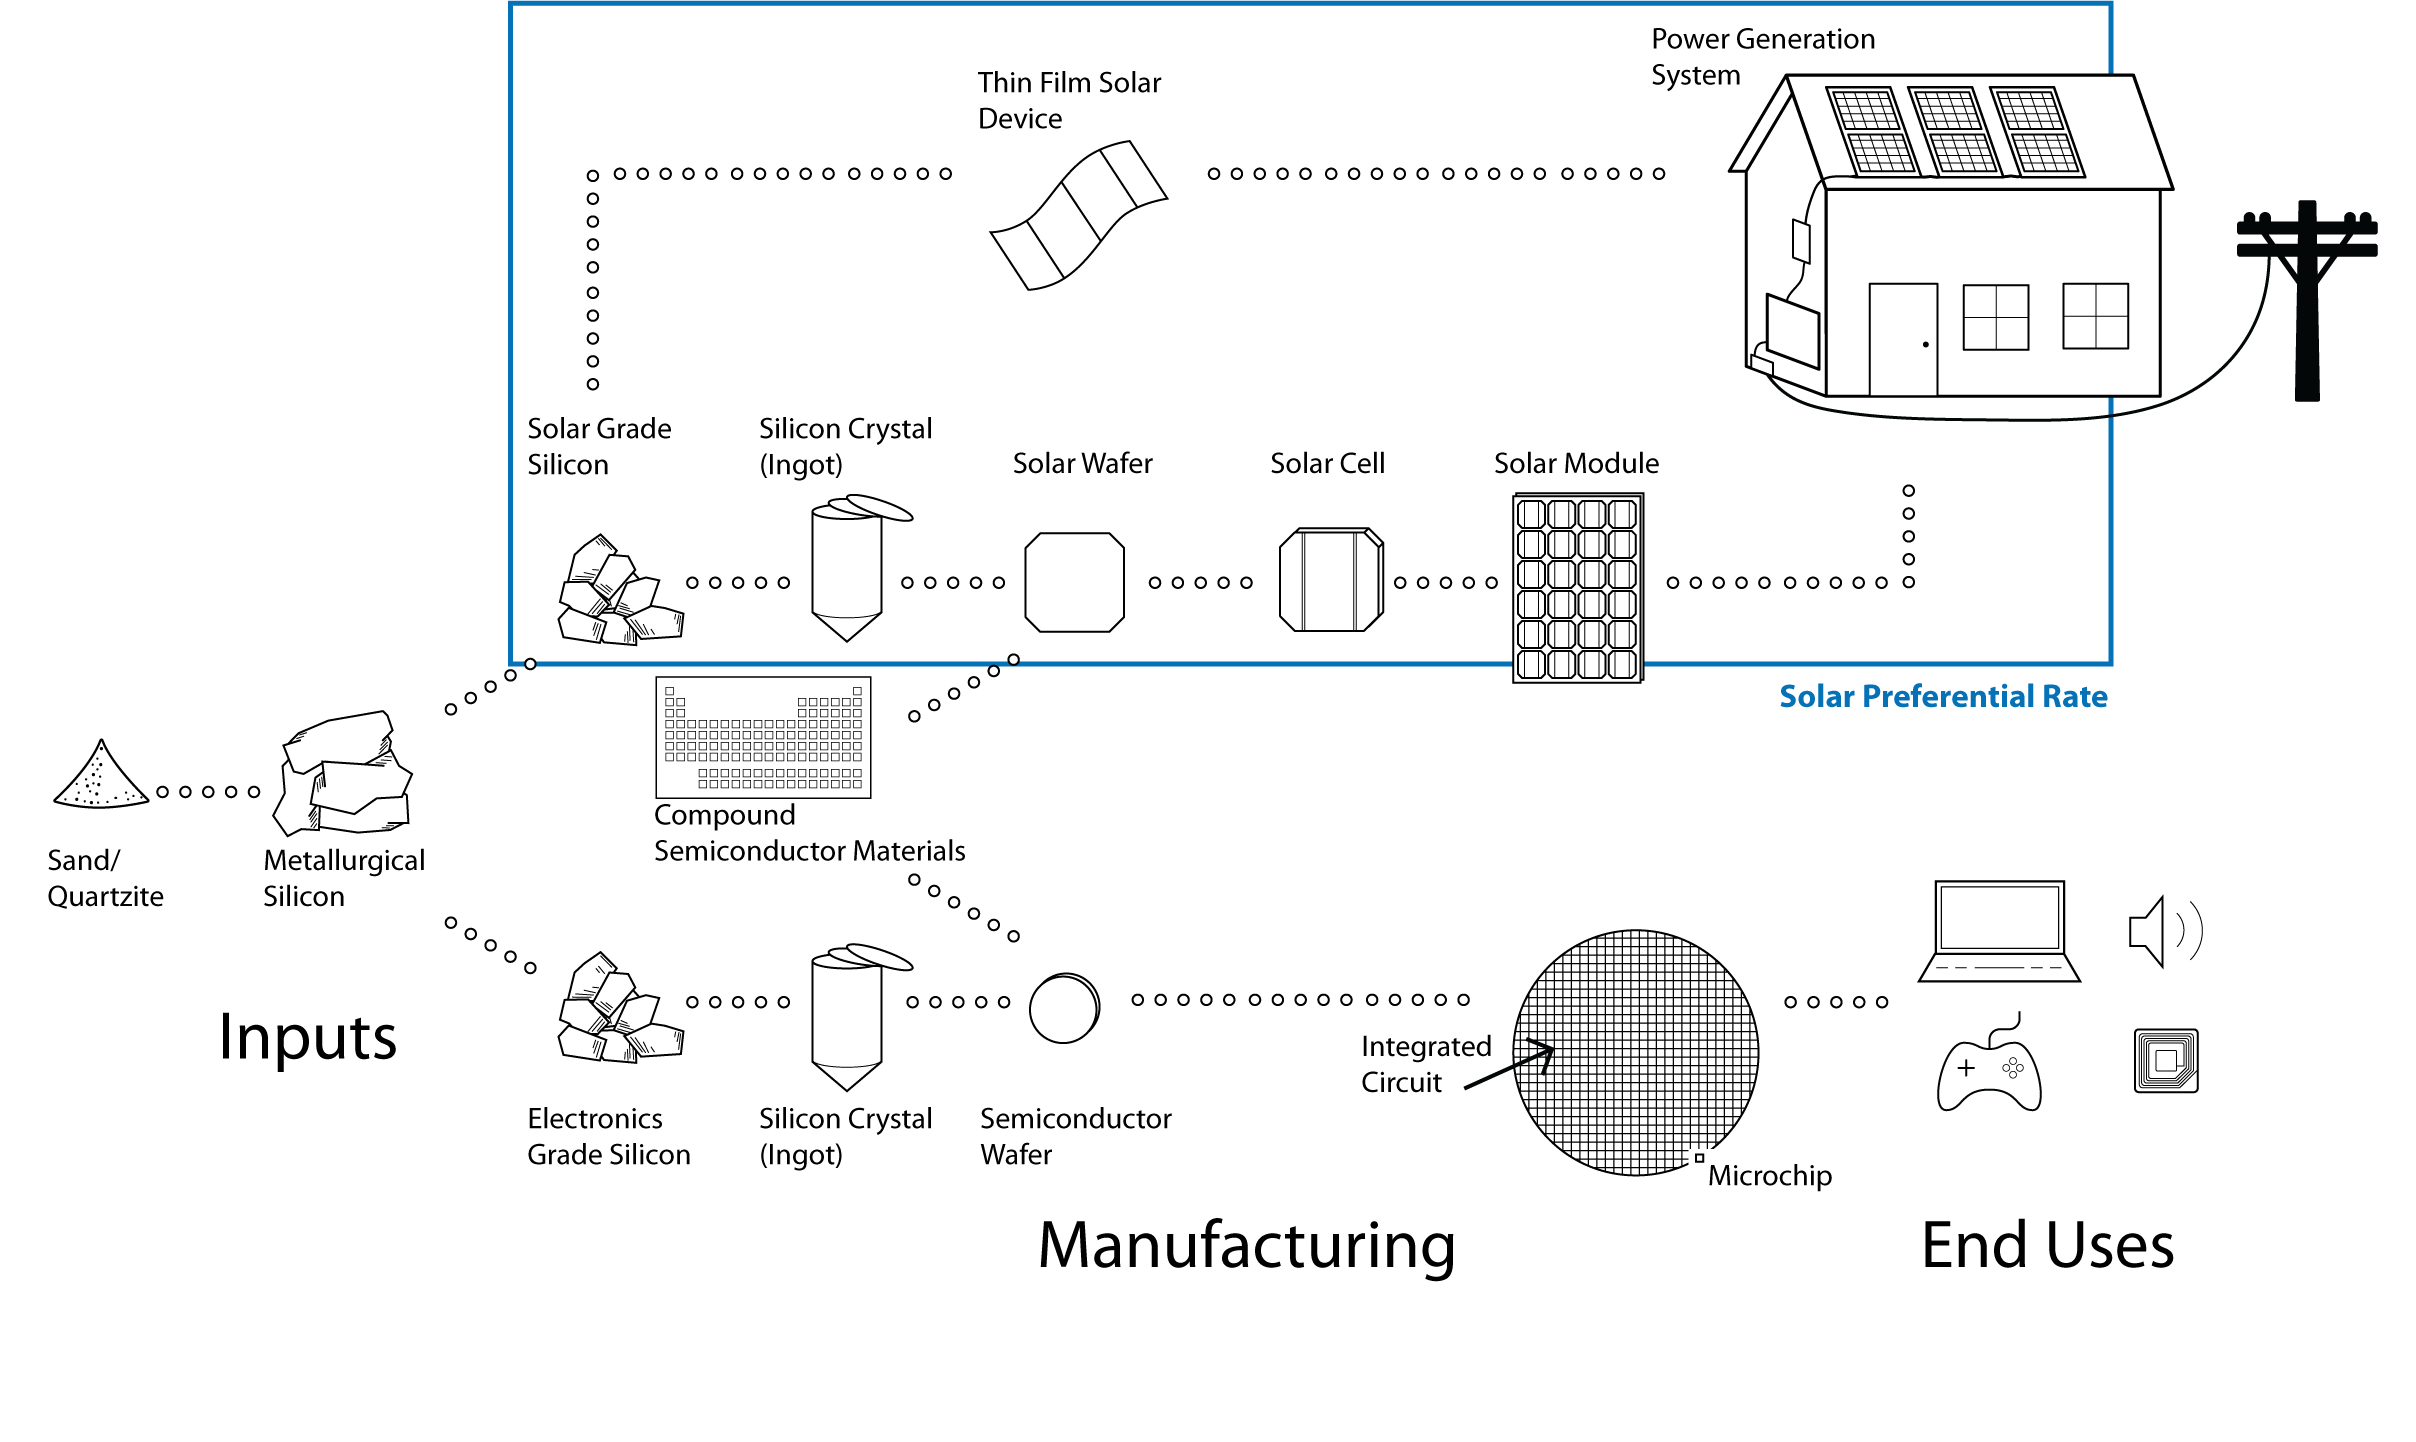 Picture6 solar energy and silicon product manufacturers tax preferences for print